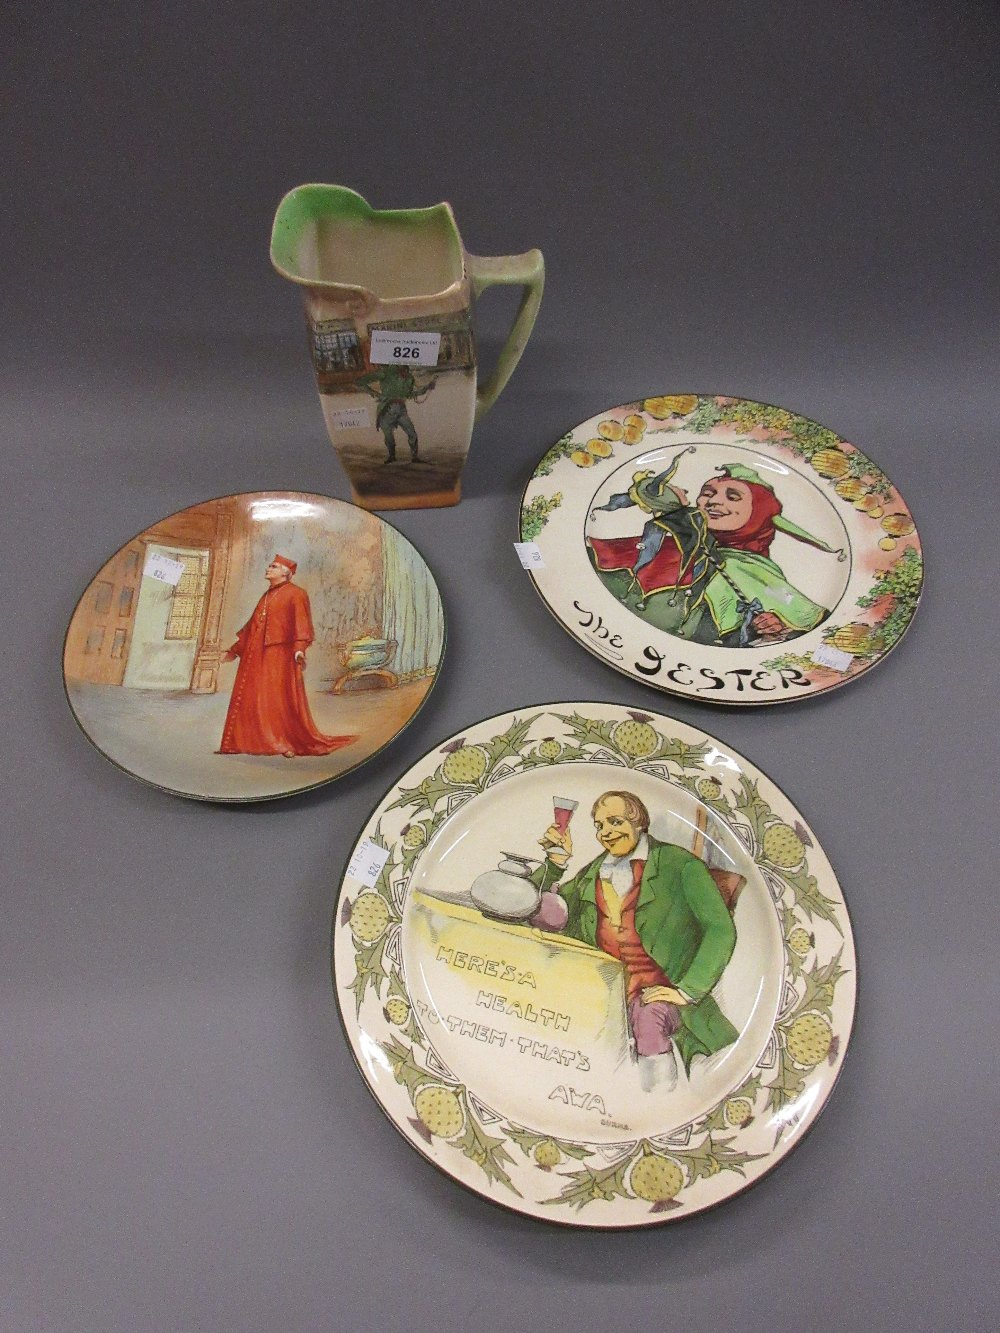 Lot 826 - Royal Doulton Dickensware jug, Alfred Jingle, a Seriesware plate Wolsey, and two other Royal Doulton